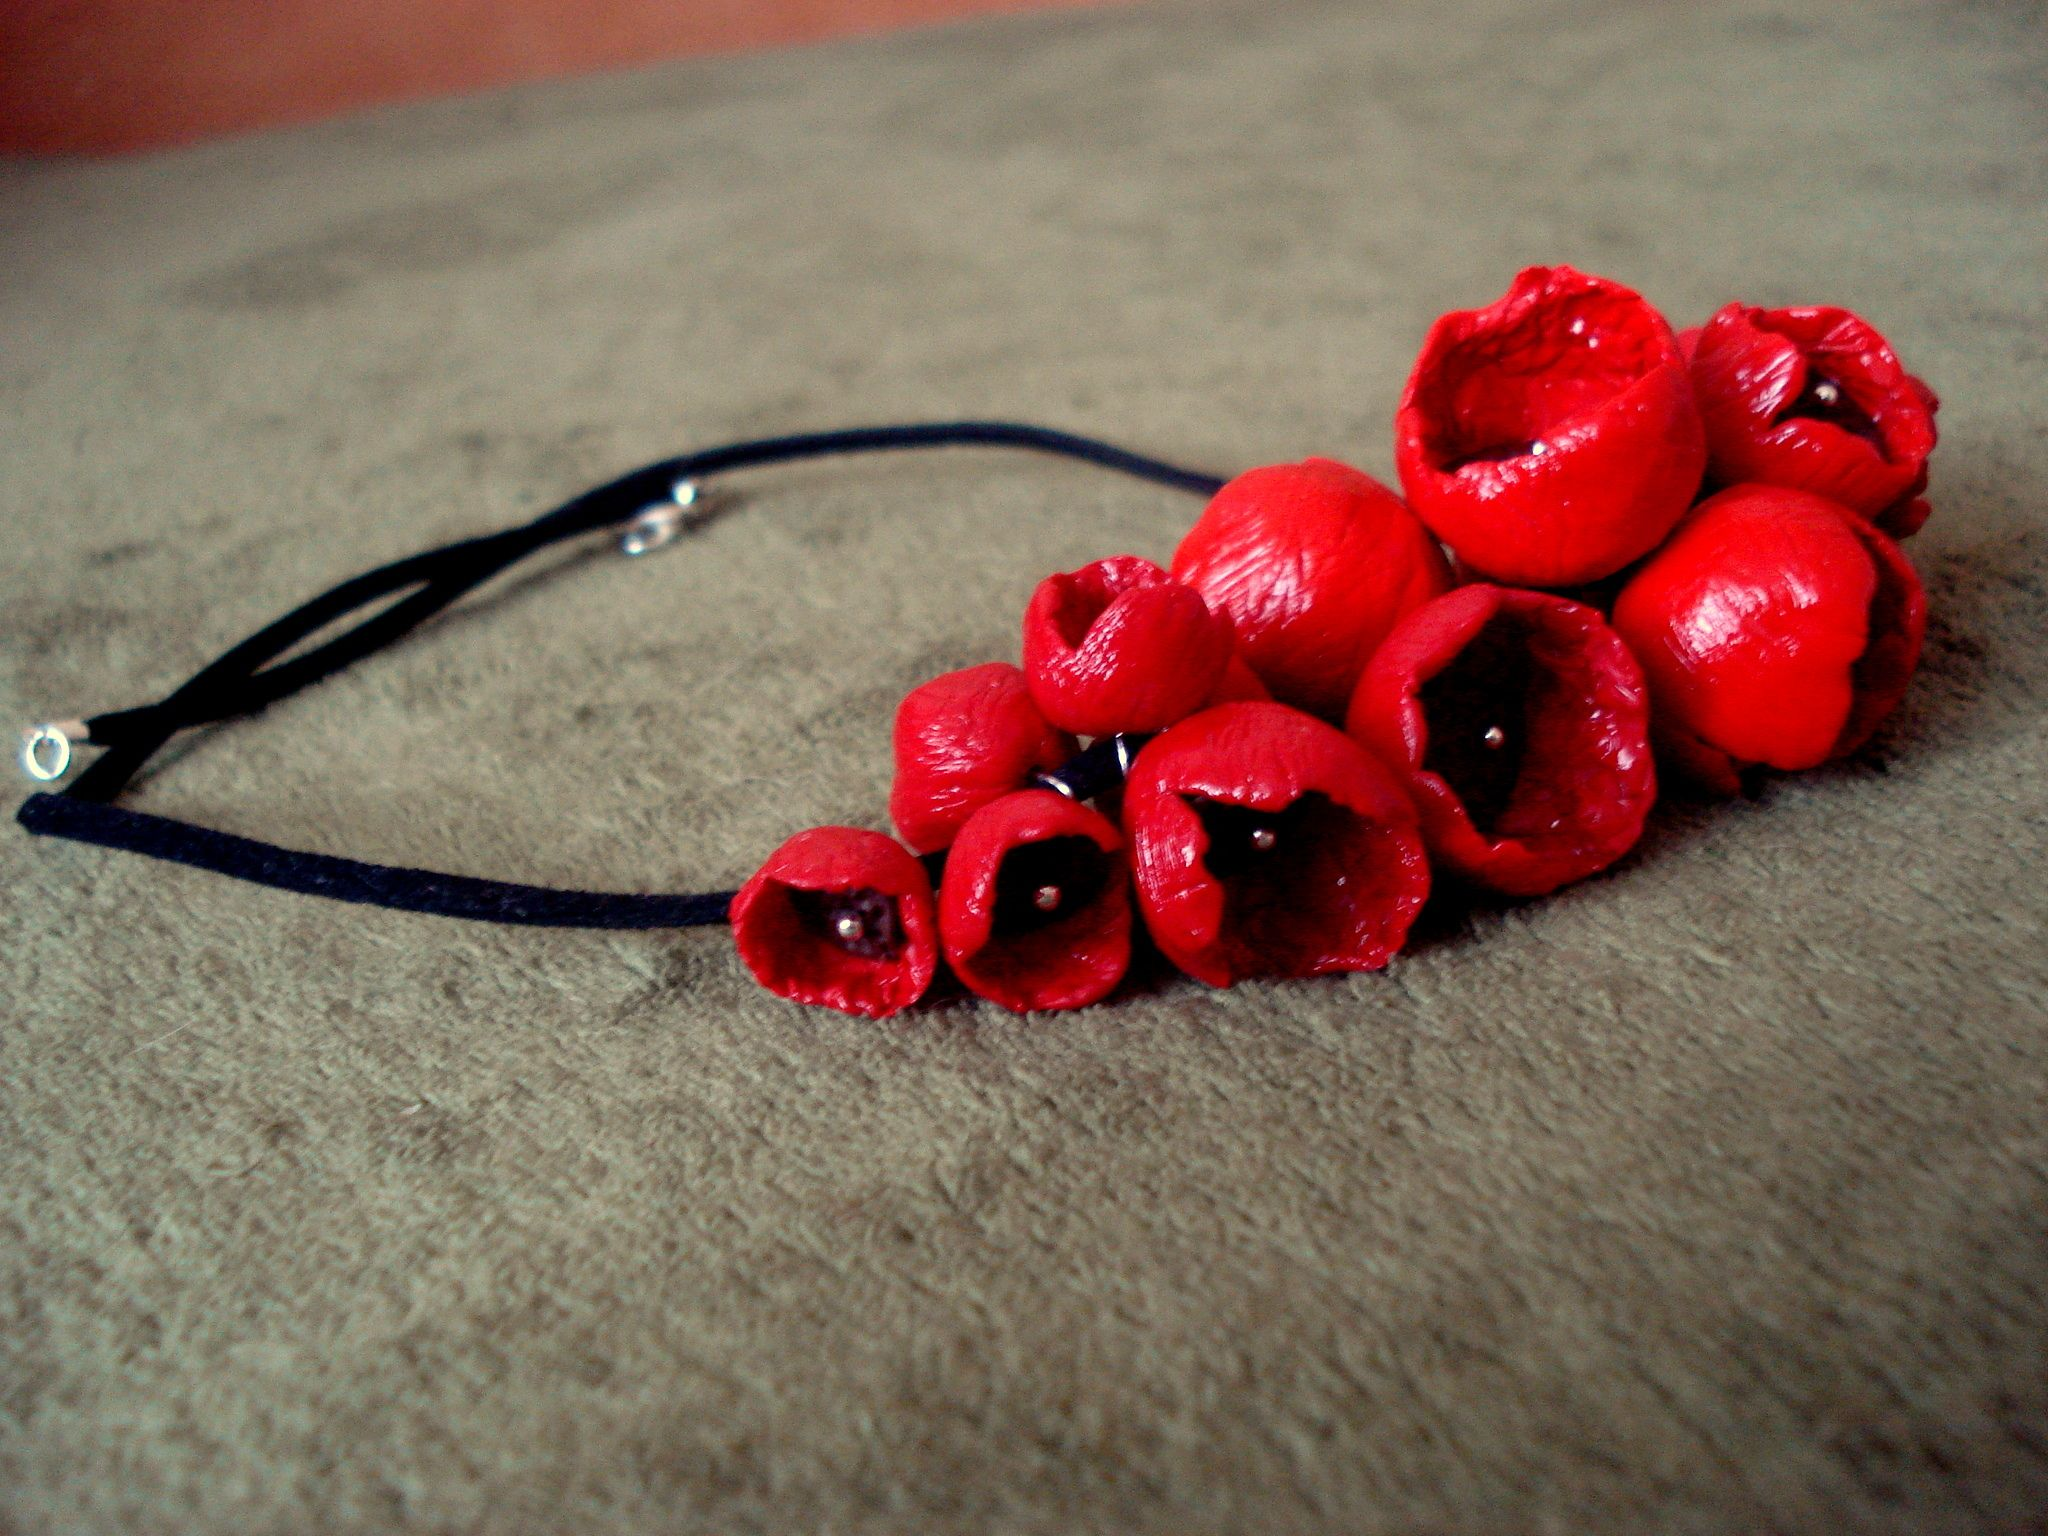 Neclace with polymer clay ppppy flowers  http://www.livemaster.ru/deroth?view=profile